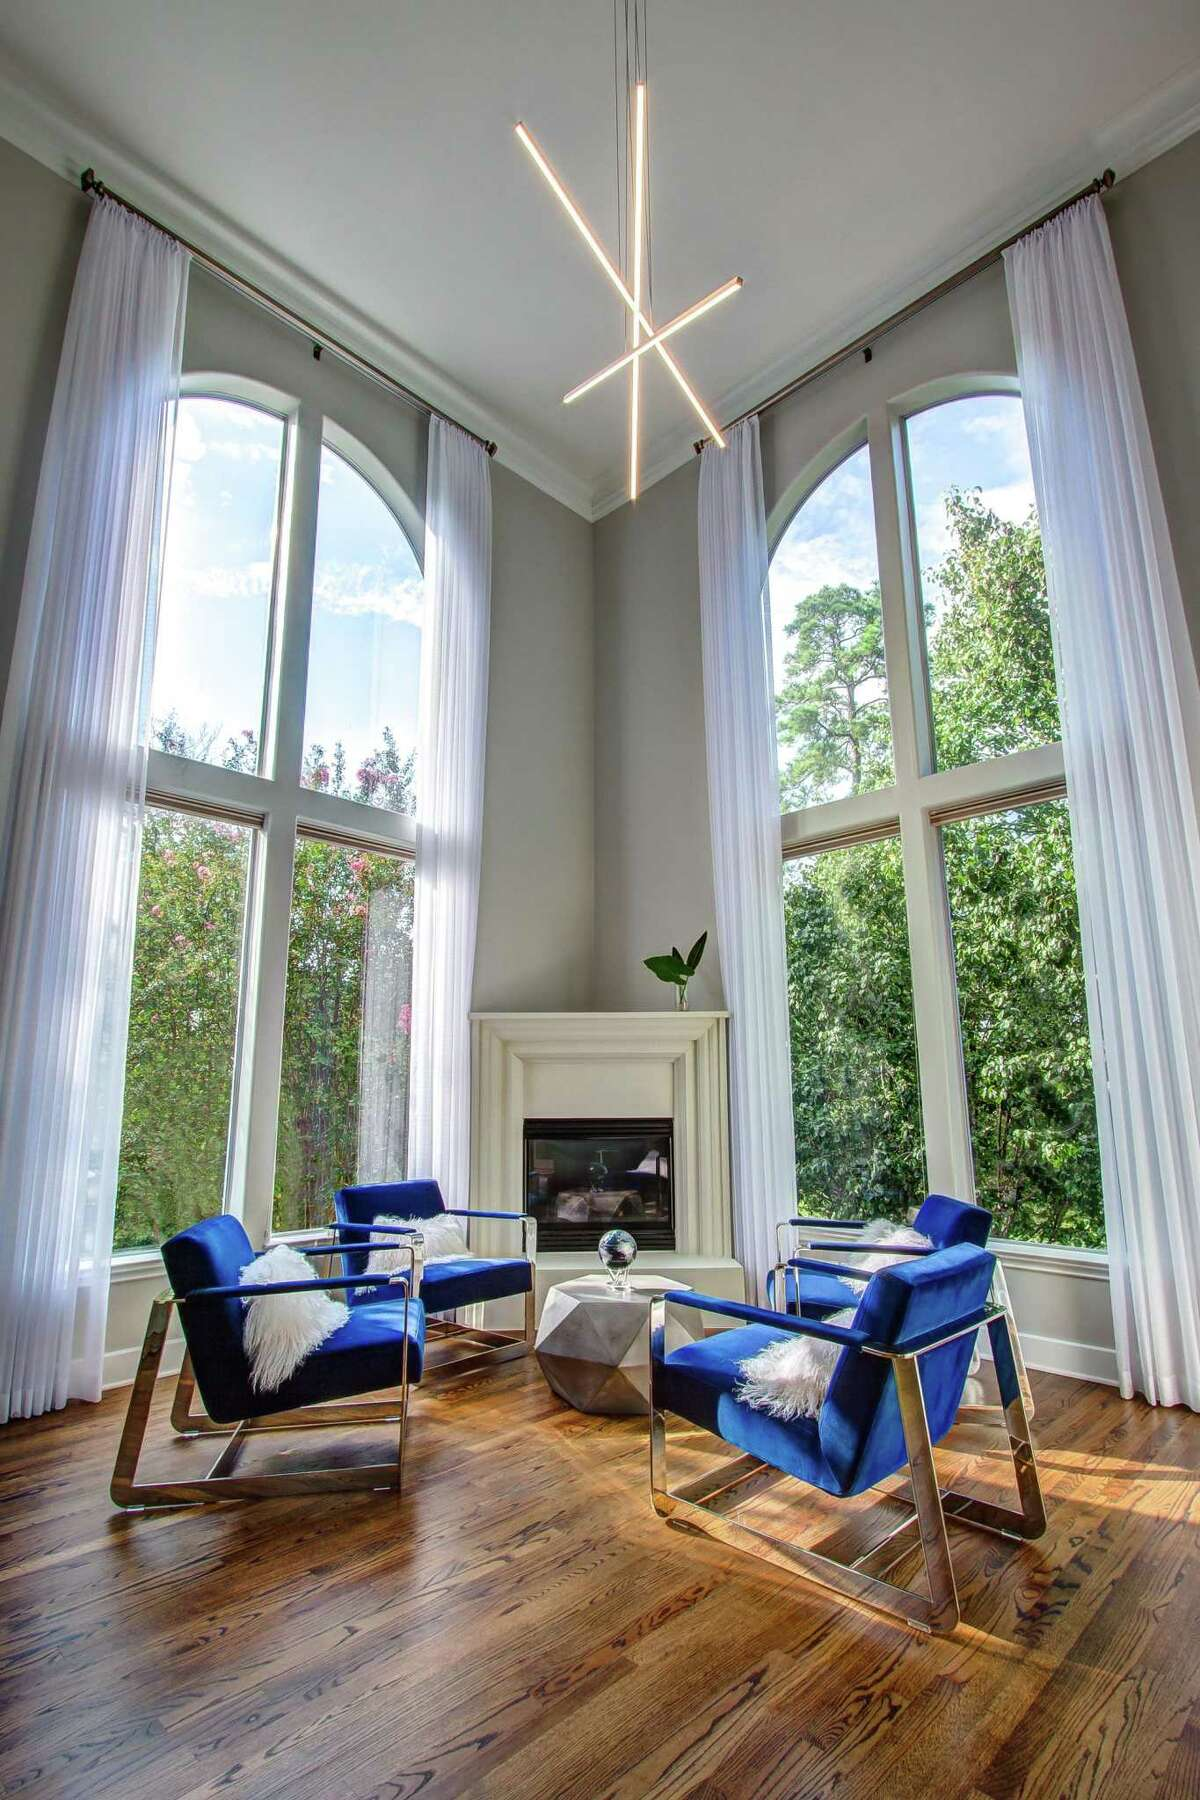 LED lights make this abstract chandelier from Visual Comfort possible. It's in a Logan Park home designed by Missy Stewart Designs.